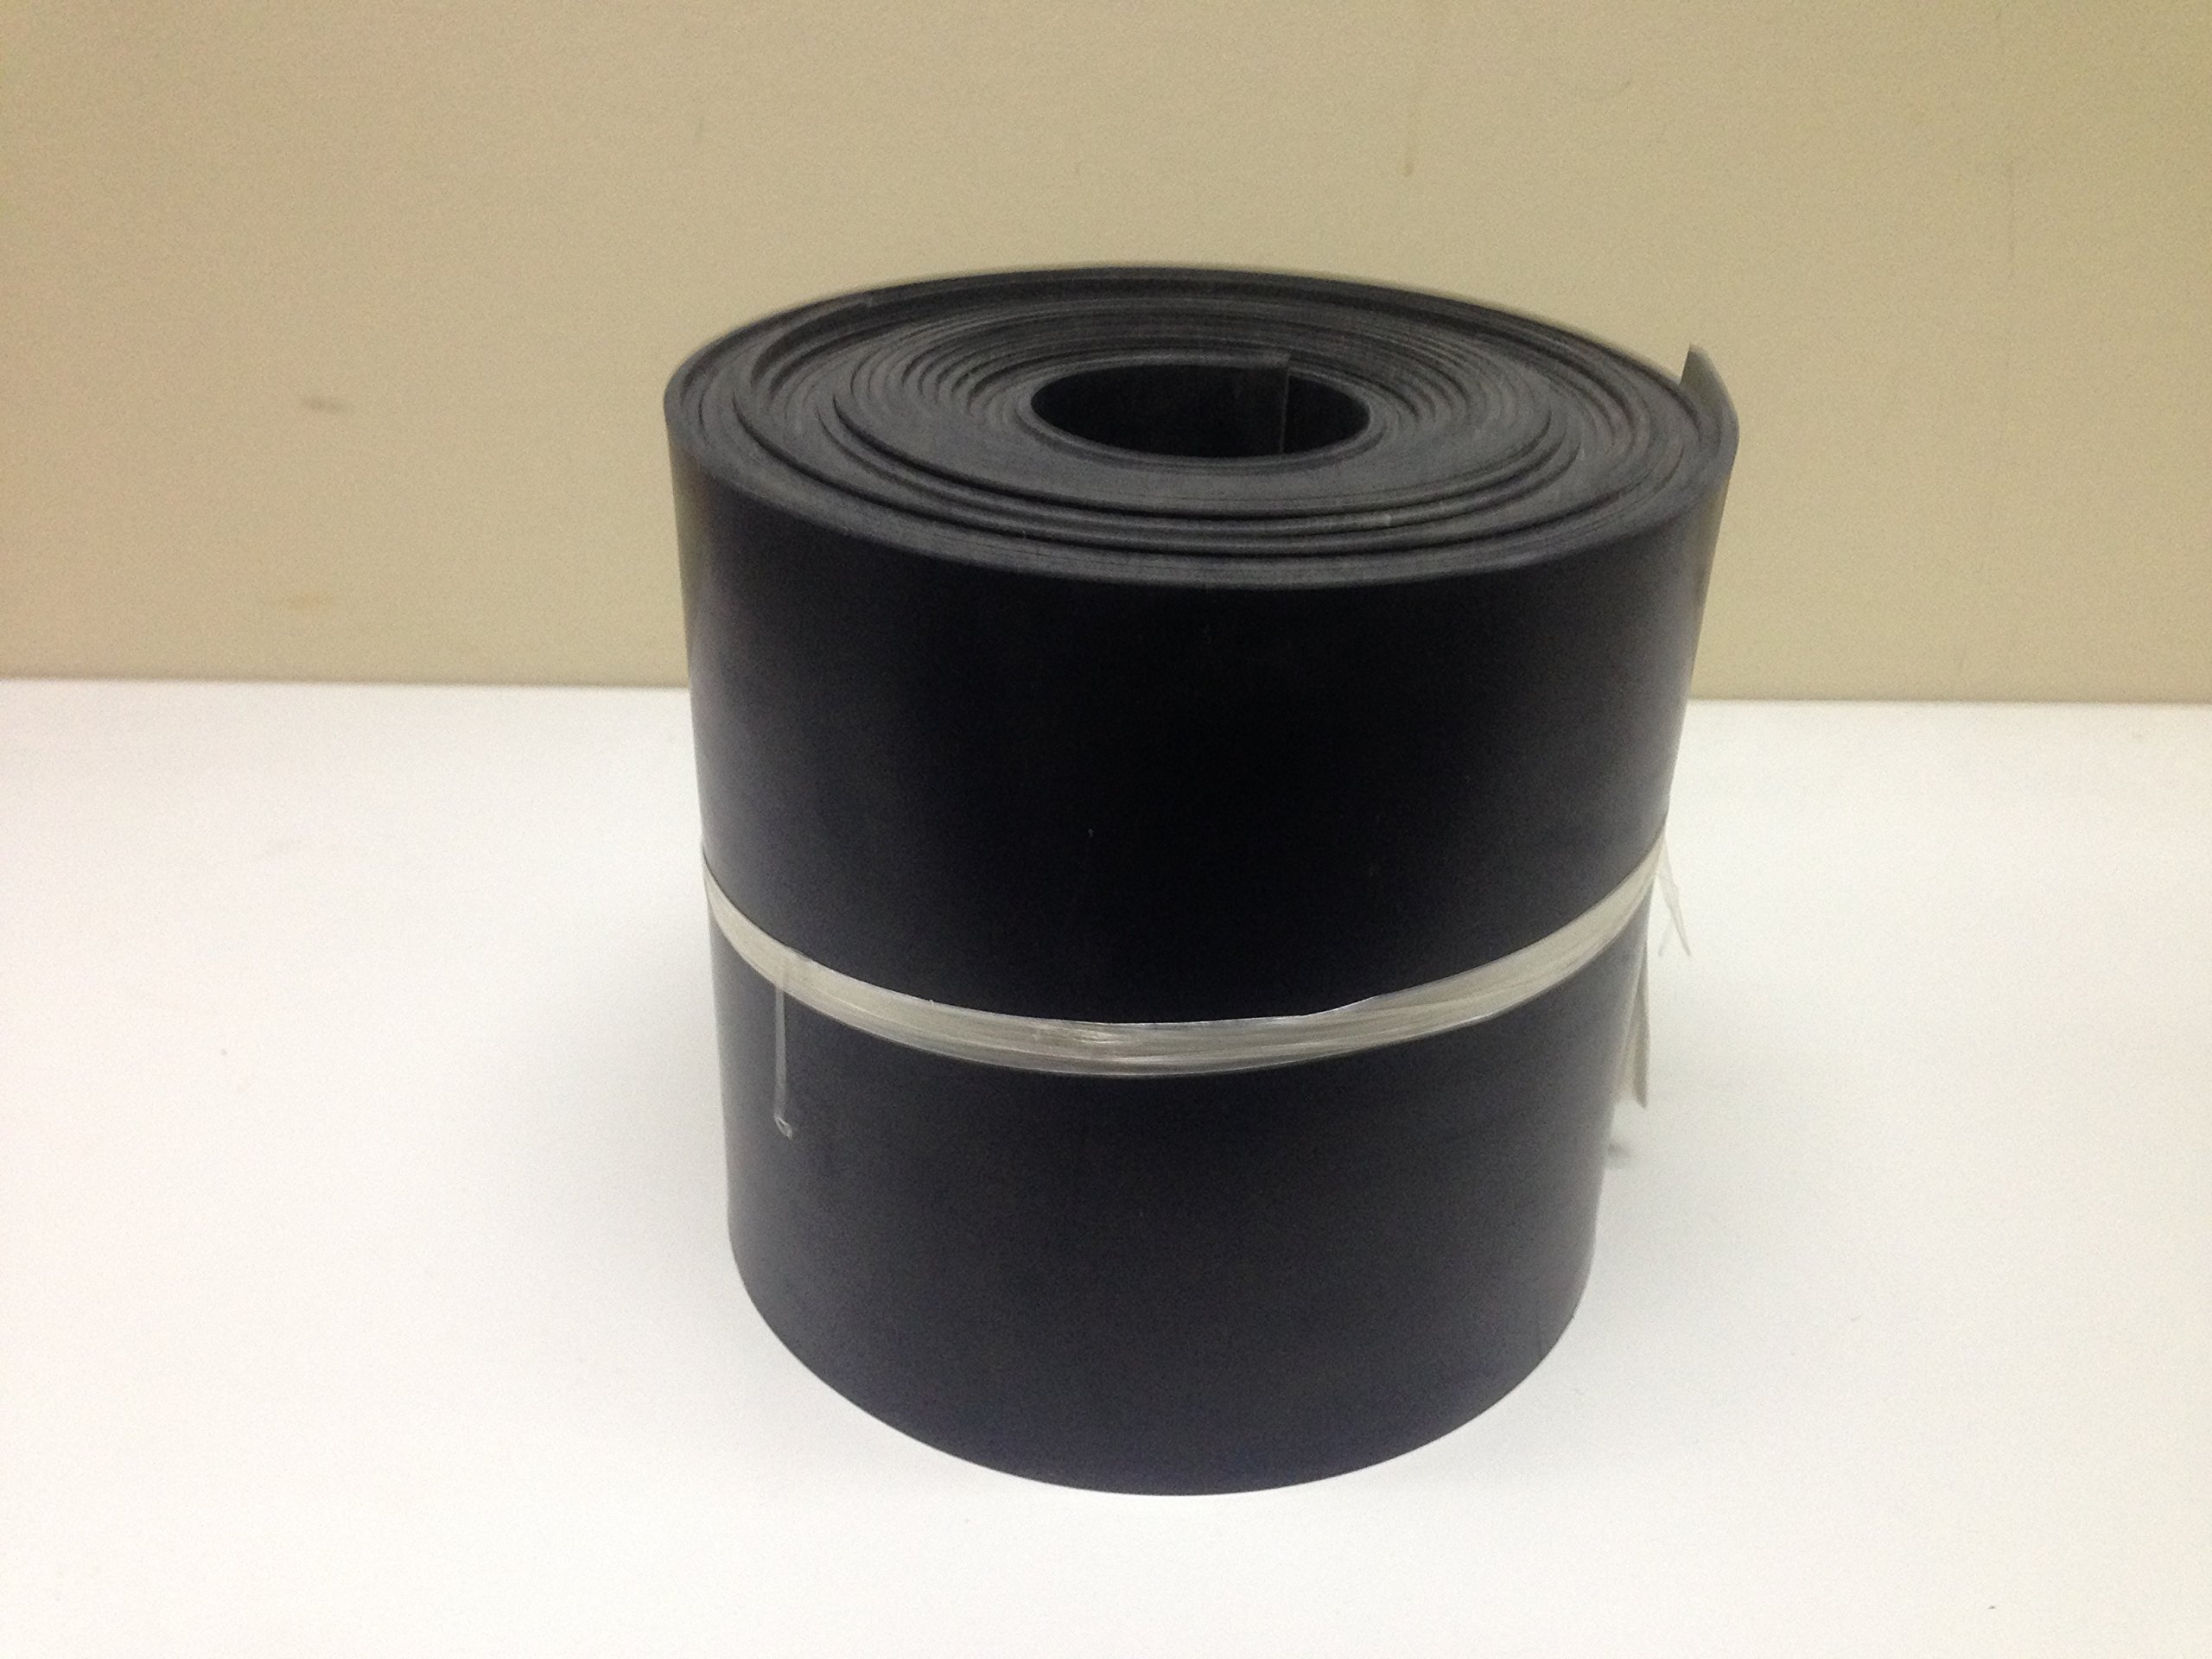 FixtureDisplays EPDM ROLL RUBBER 5/64'' THICK 8''x32' FEET Roofing Patch Sealing Cushion 11809